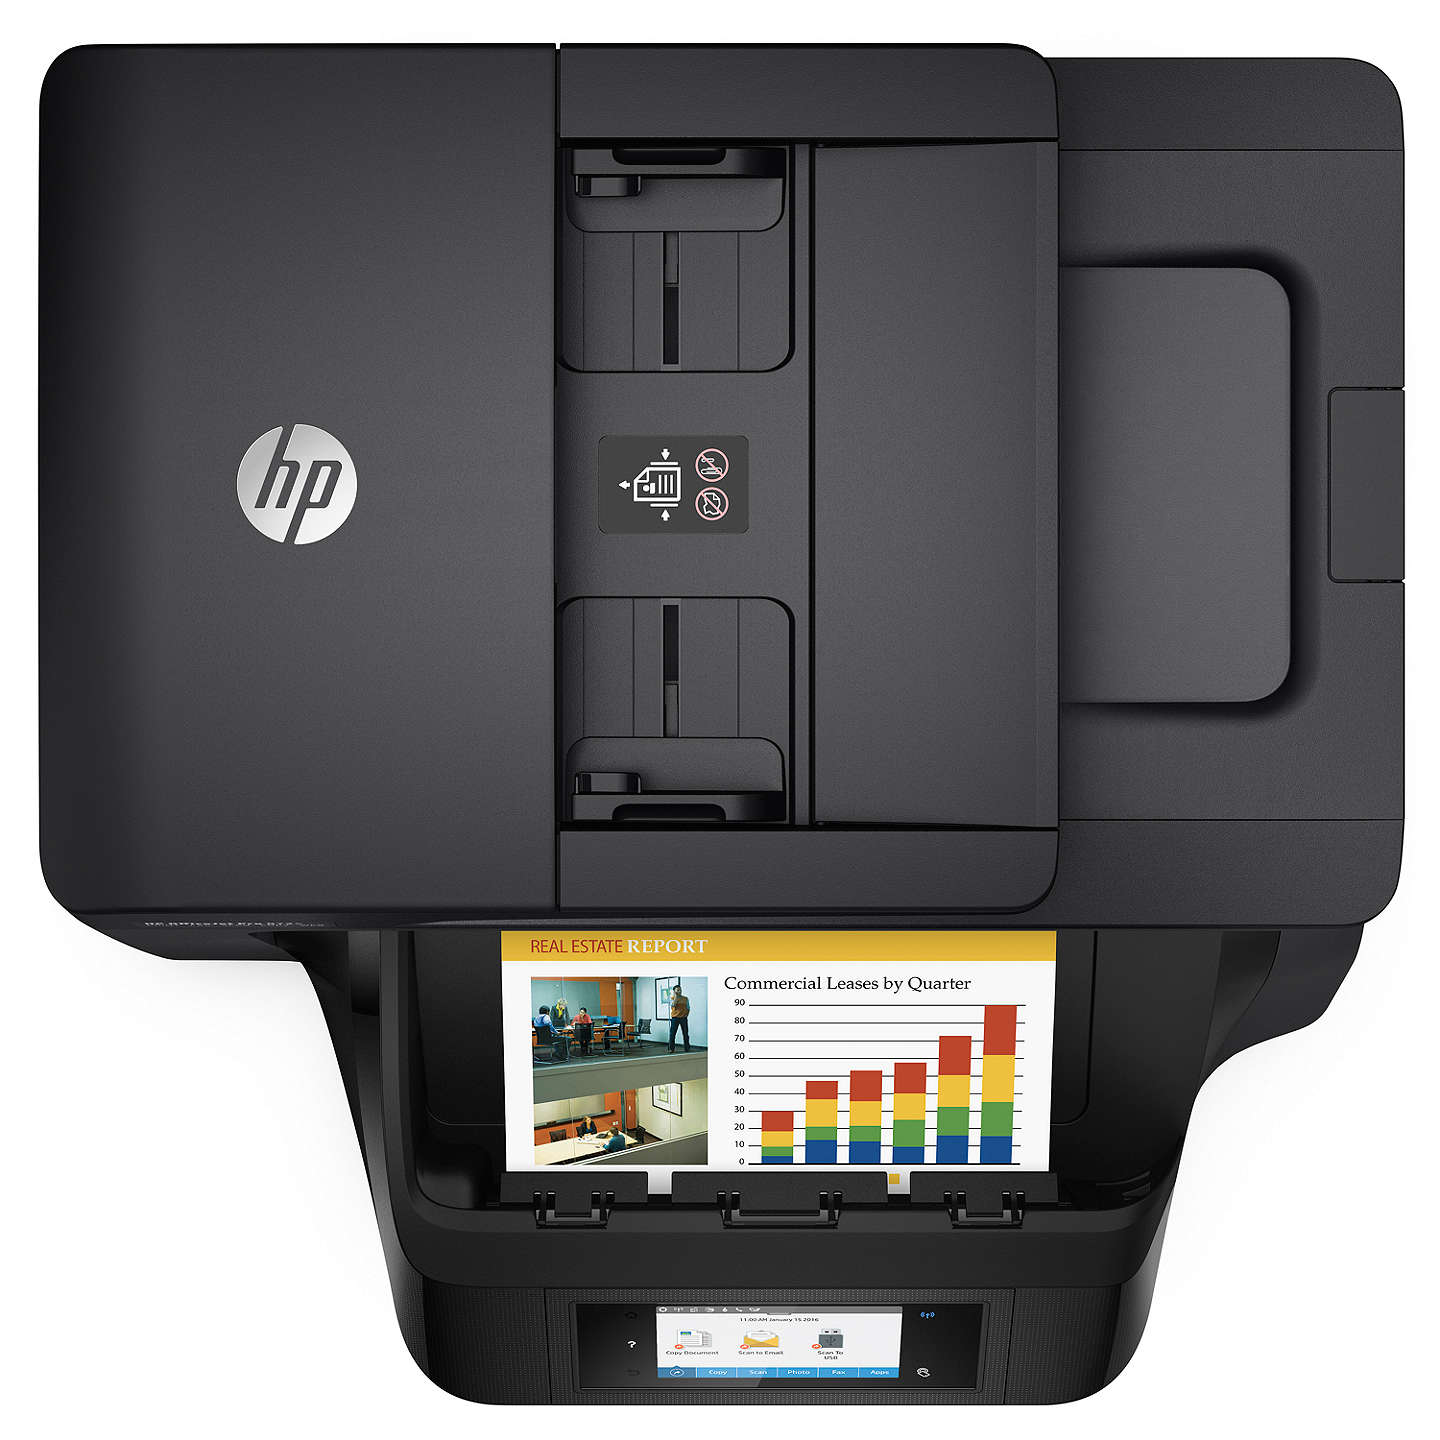 BuyHP Officejet Pro 8725 All-in-One Wireless NFC Printer & Fax Machine with Touch Screen, HP Instant Ink Compatible with 3 Months Trial Online at johnlewis.com